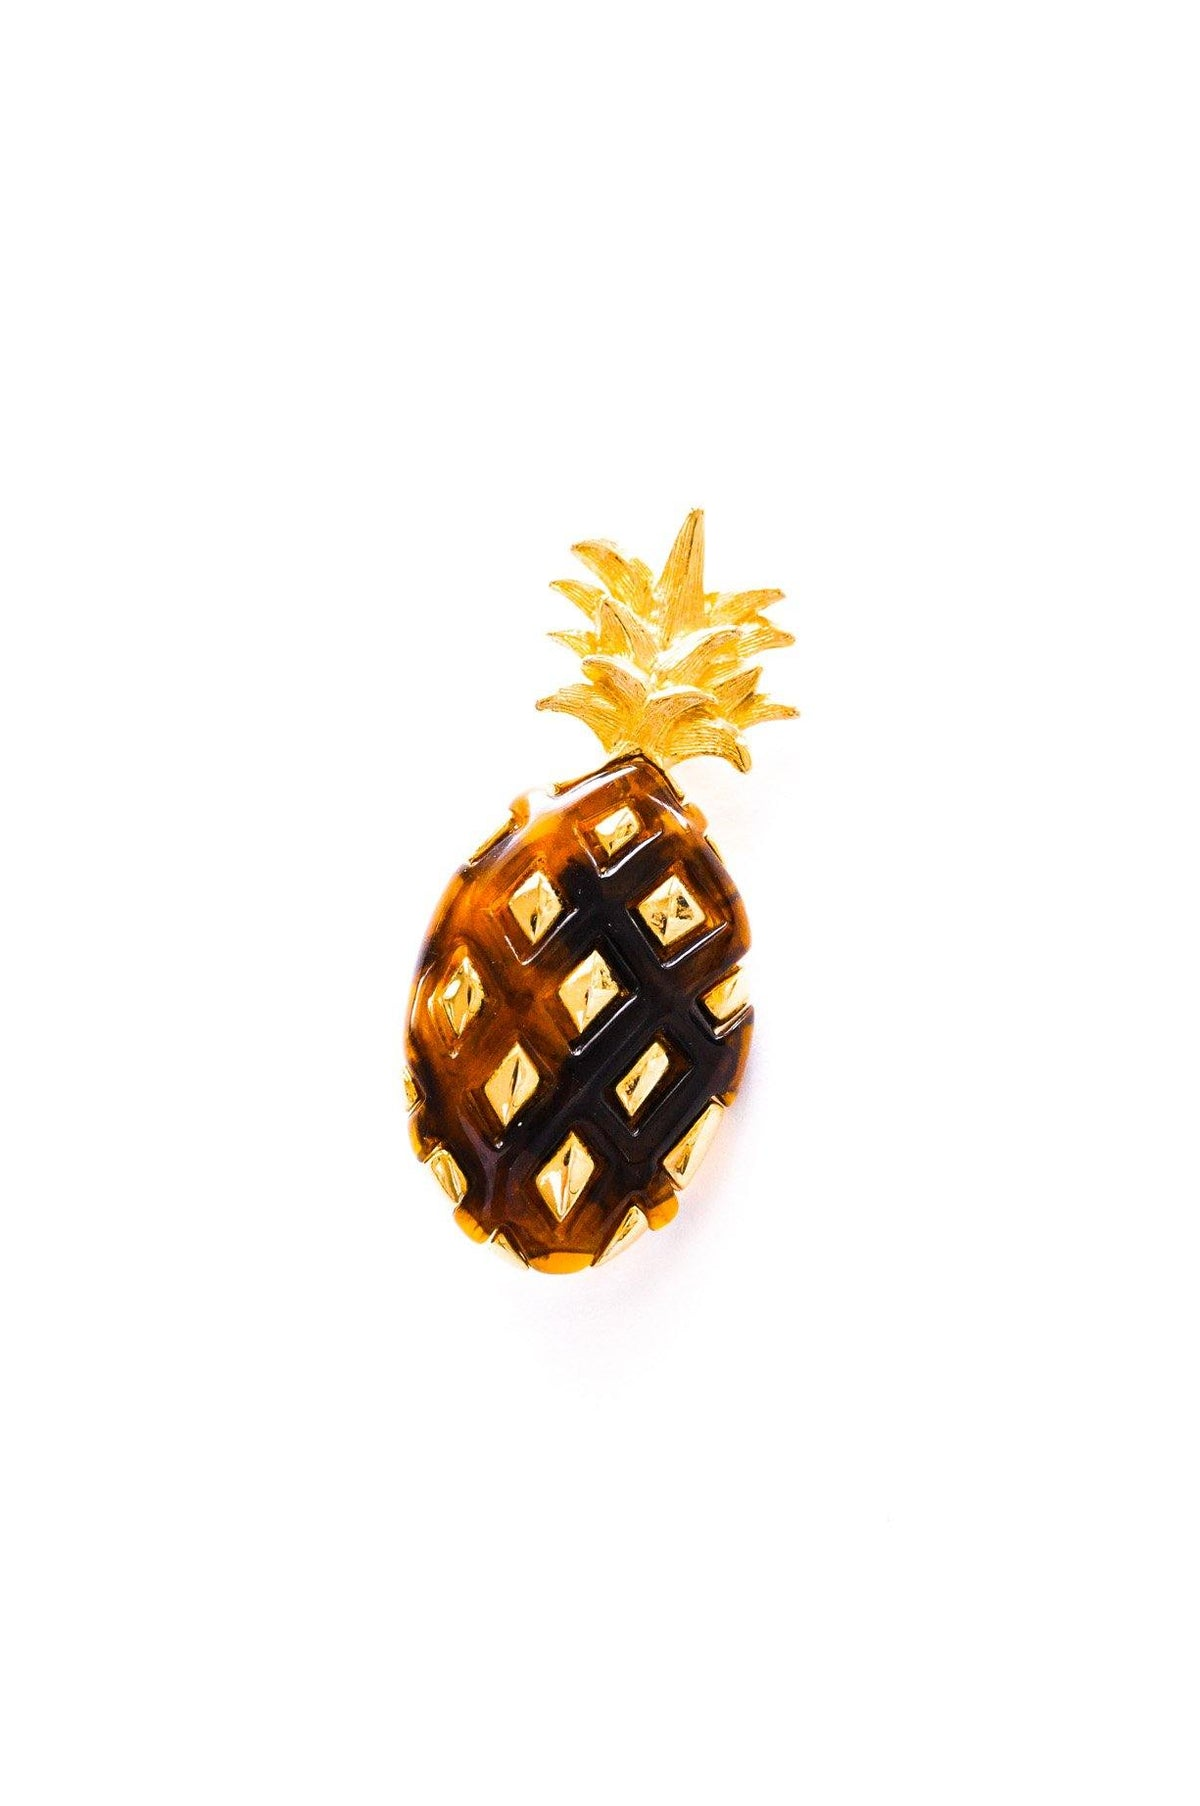 Vintage Liz Claiborne Pineapple Brooch from Sweet & Spark.